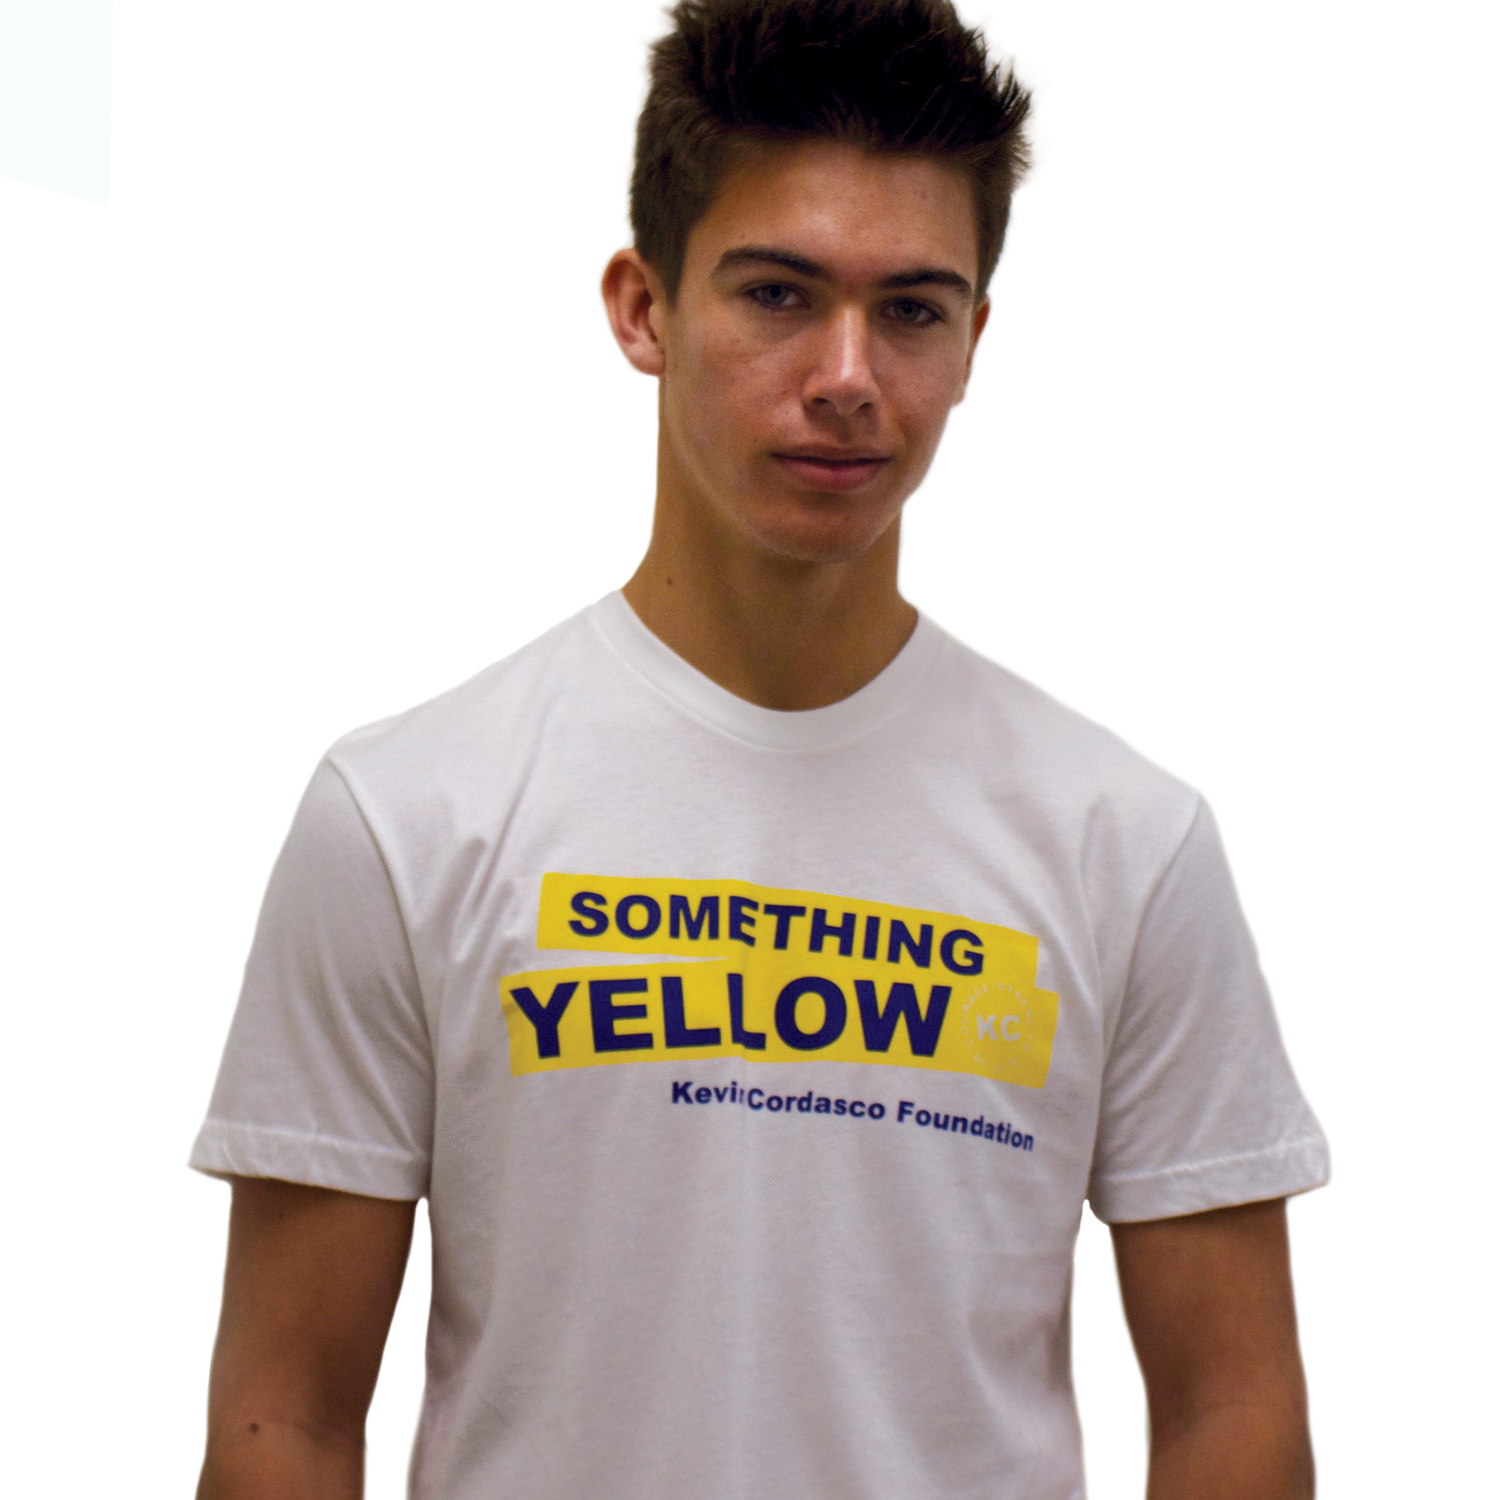 Something Yellow T Shirt